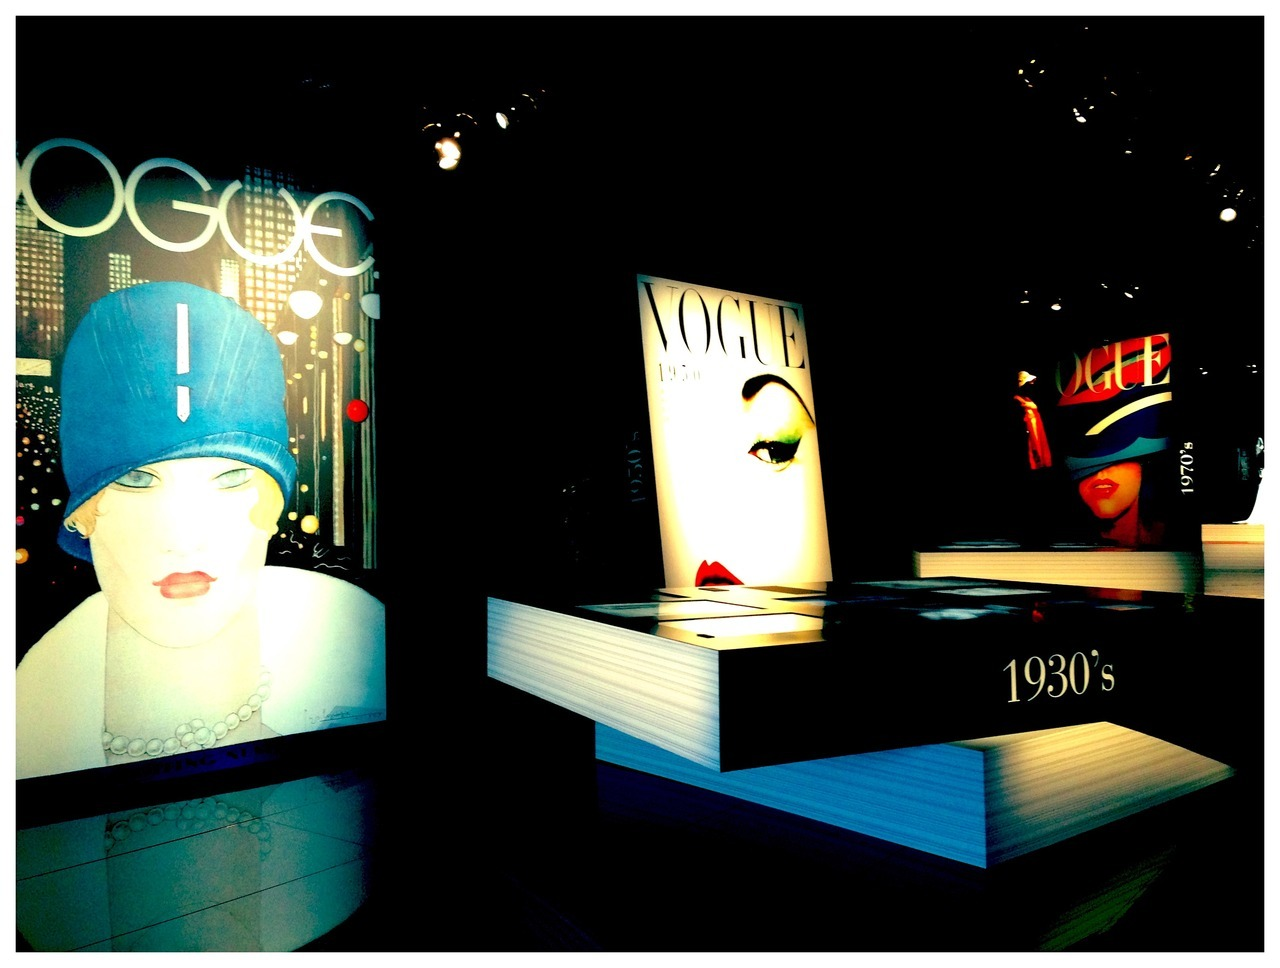 120 years of Vogue and 7 years of Vogue China Exhibition  Designed by Alexandre de Betak  Opened last night in Beijing  The exhibition space